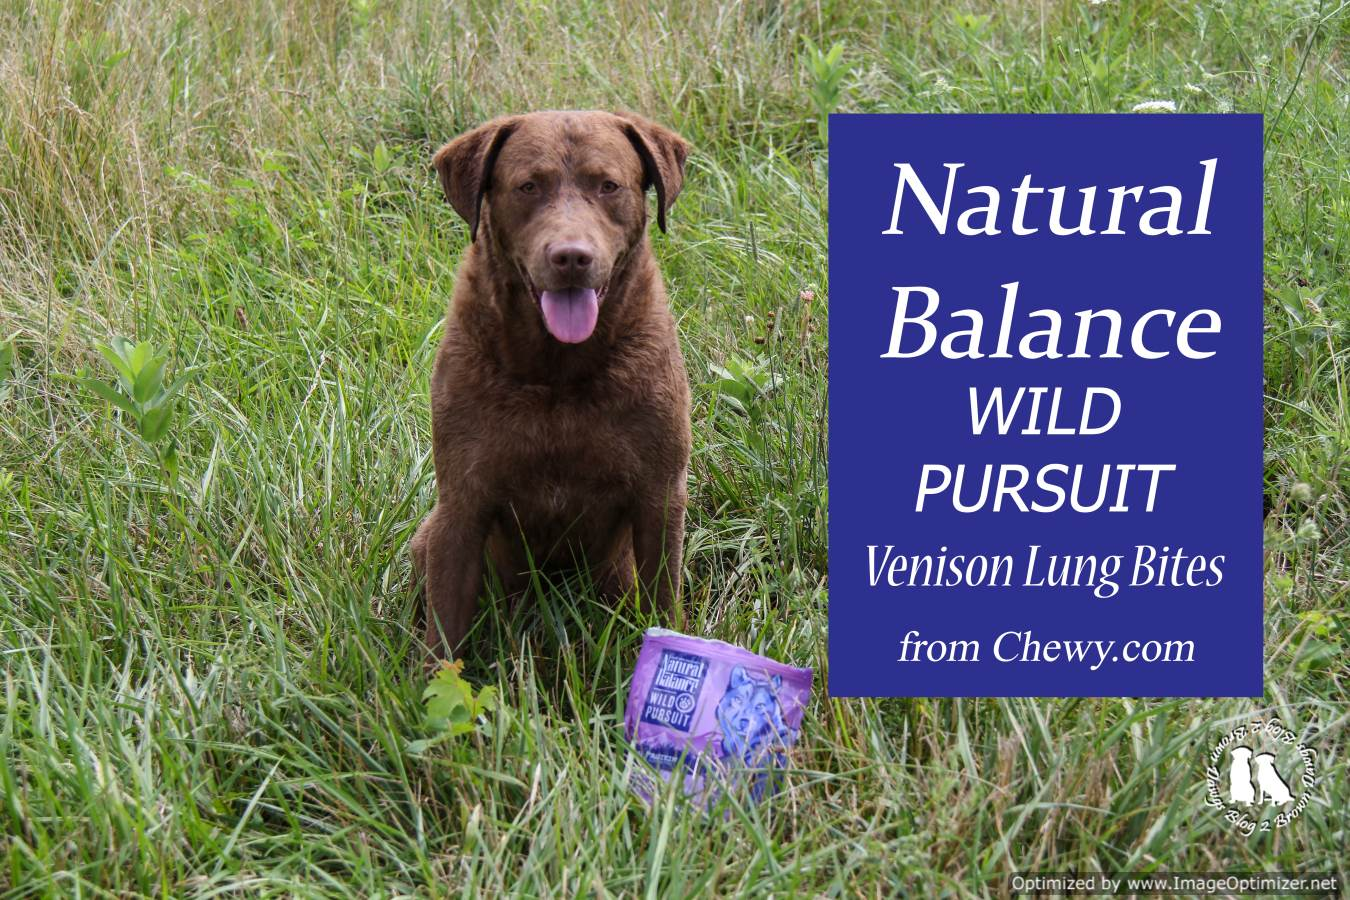 Natural Balance Venison Lung Bites